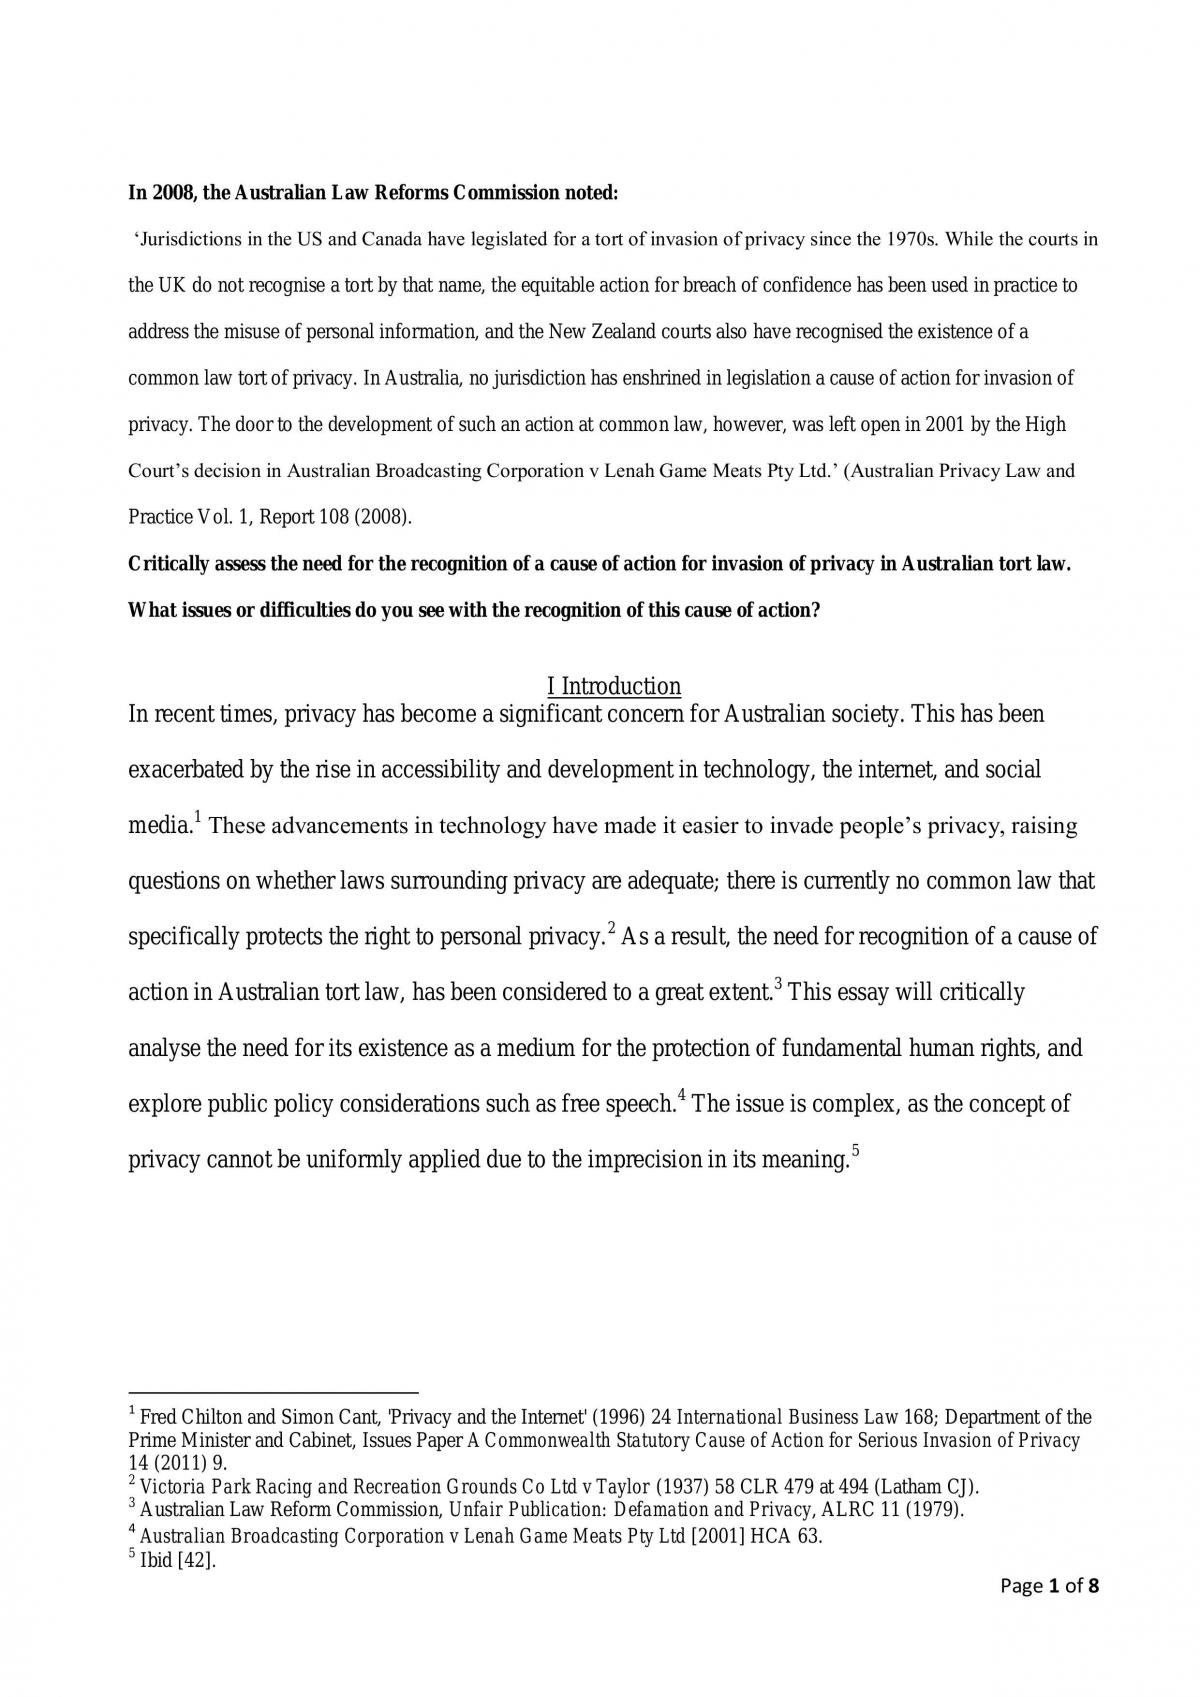 Research assignment - Page 1